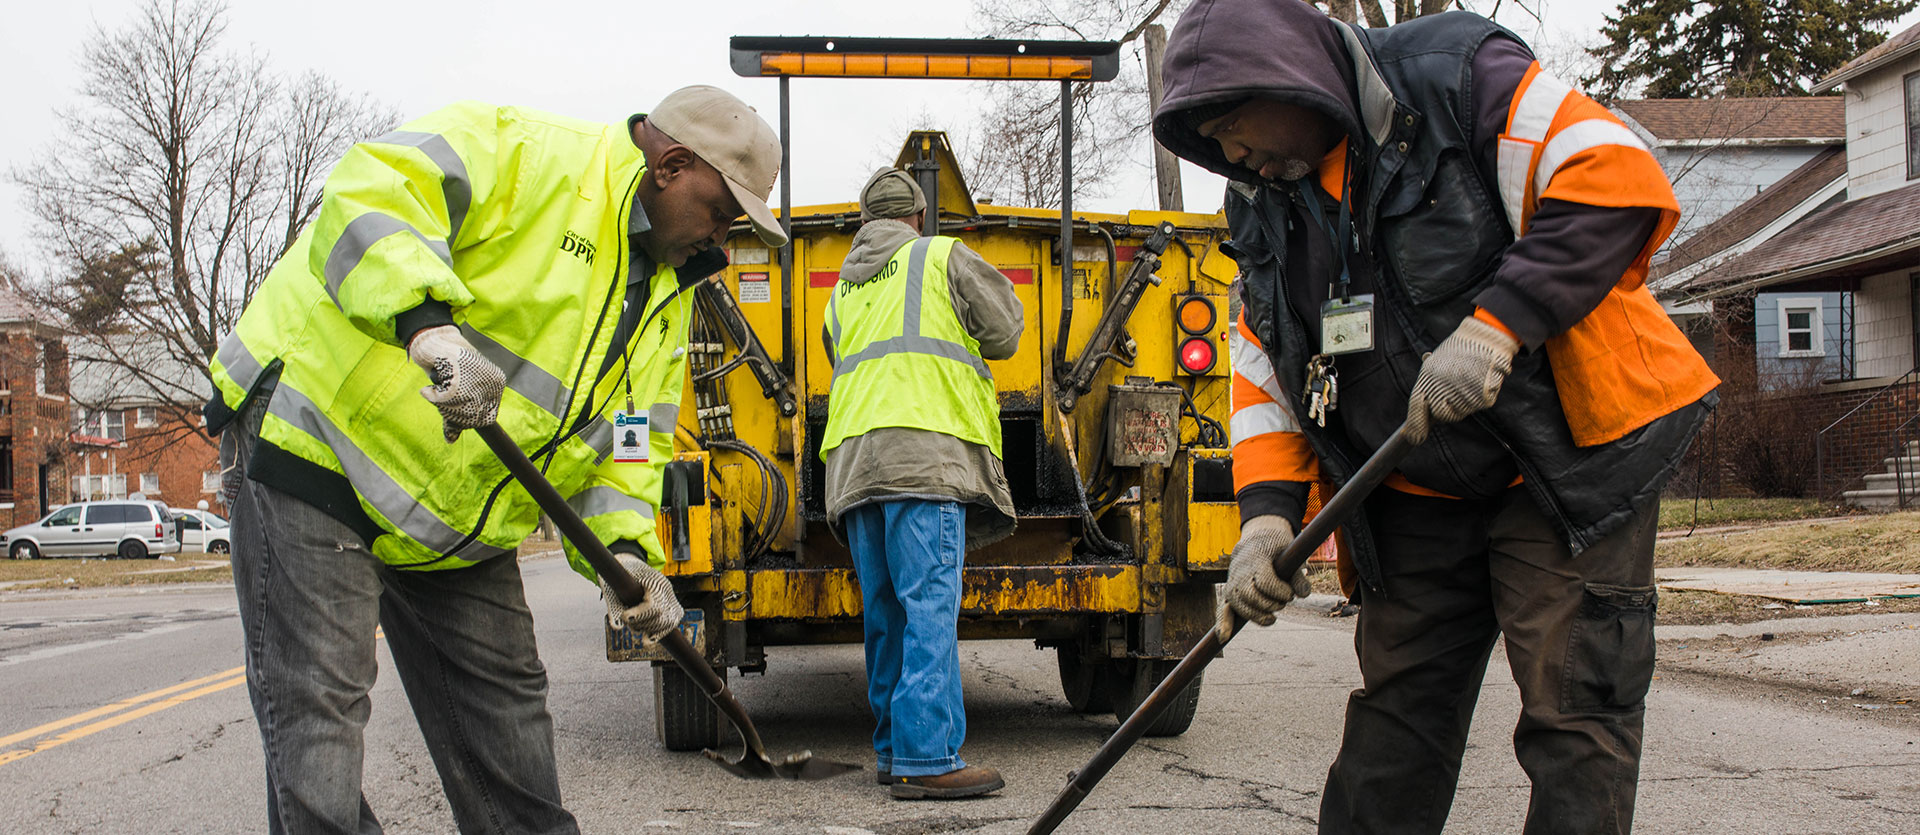 Department of Public Works | City of Detroit